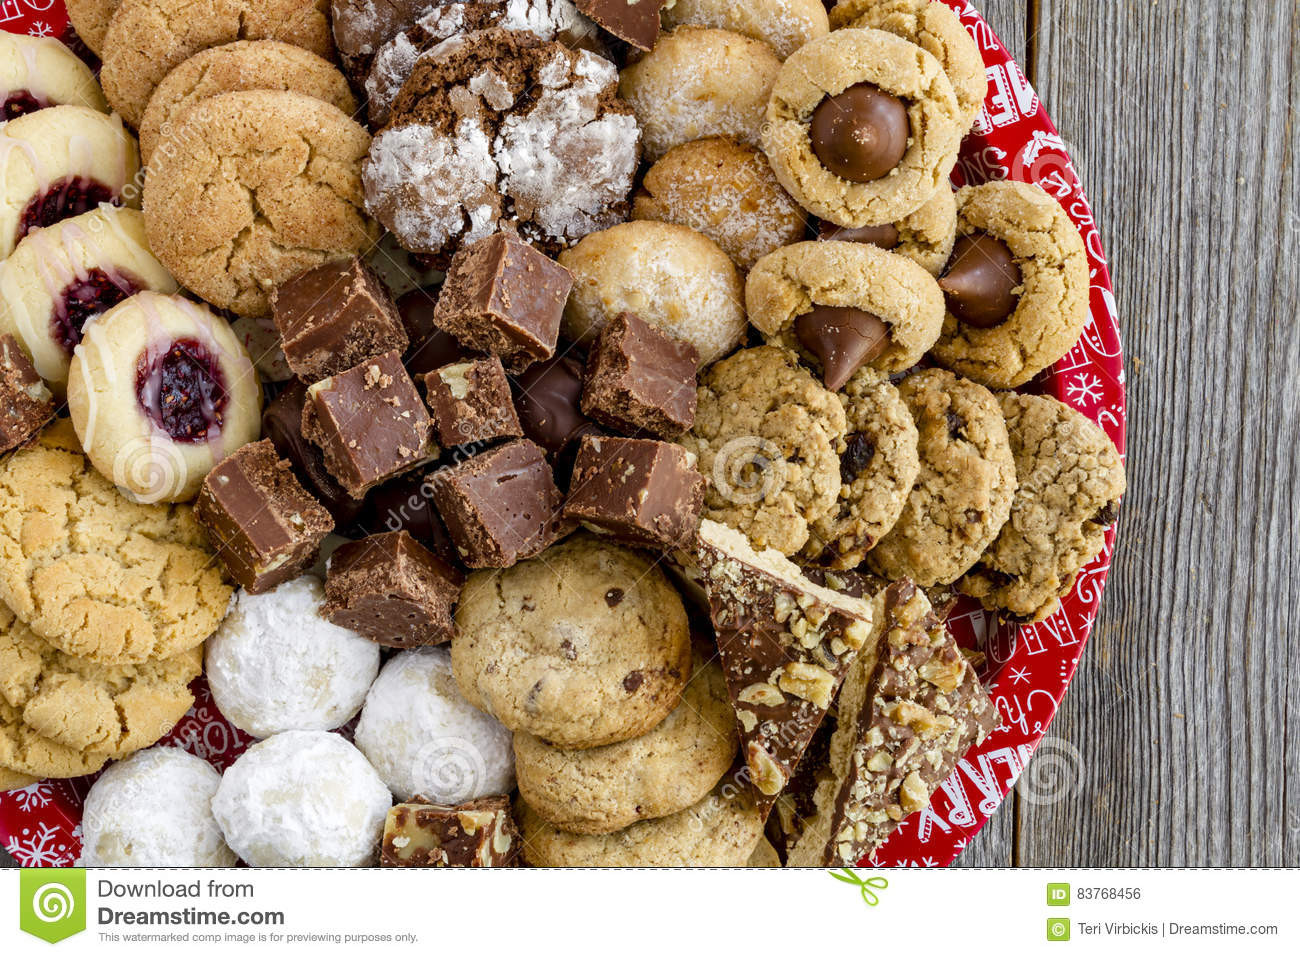 Homemade Christmas Cookies For Sale  Holiday Cookie Gift Tray With Assorted Baked Goods Stock